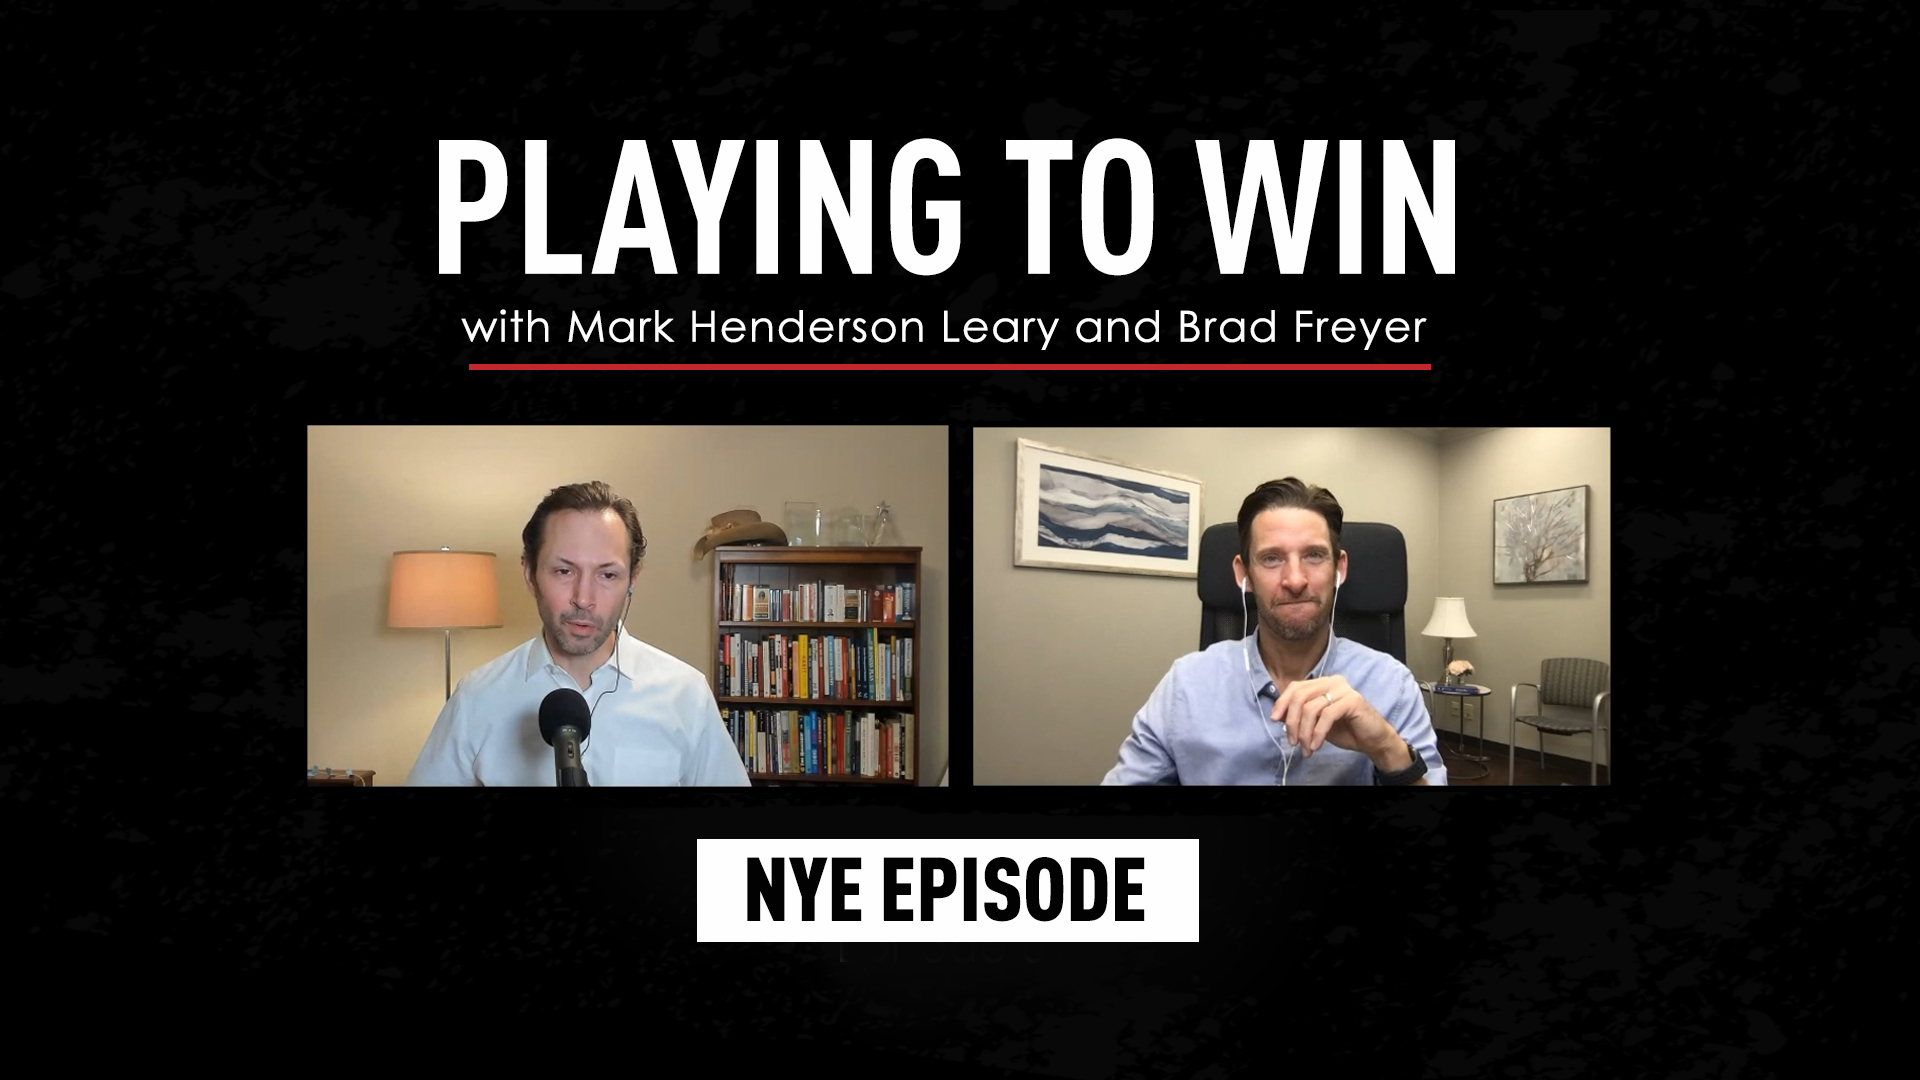 Playing to Win  New Year's Episode